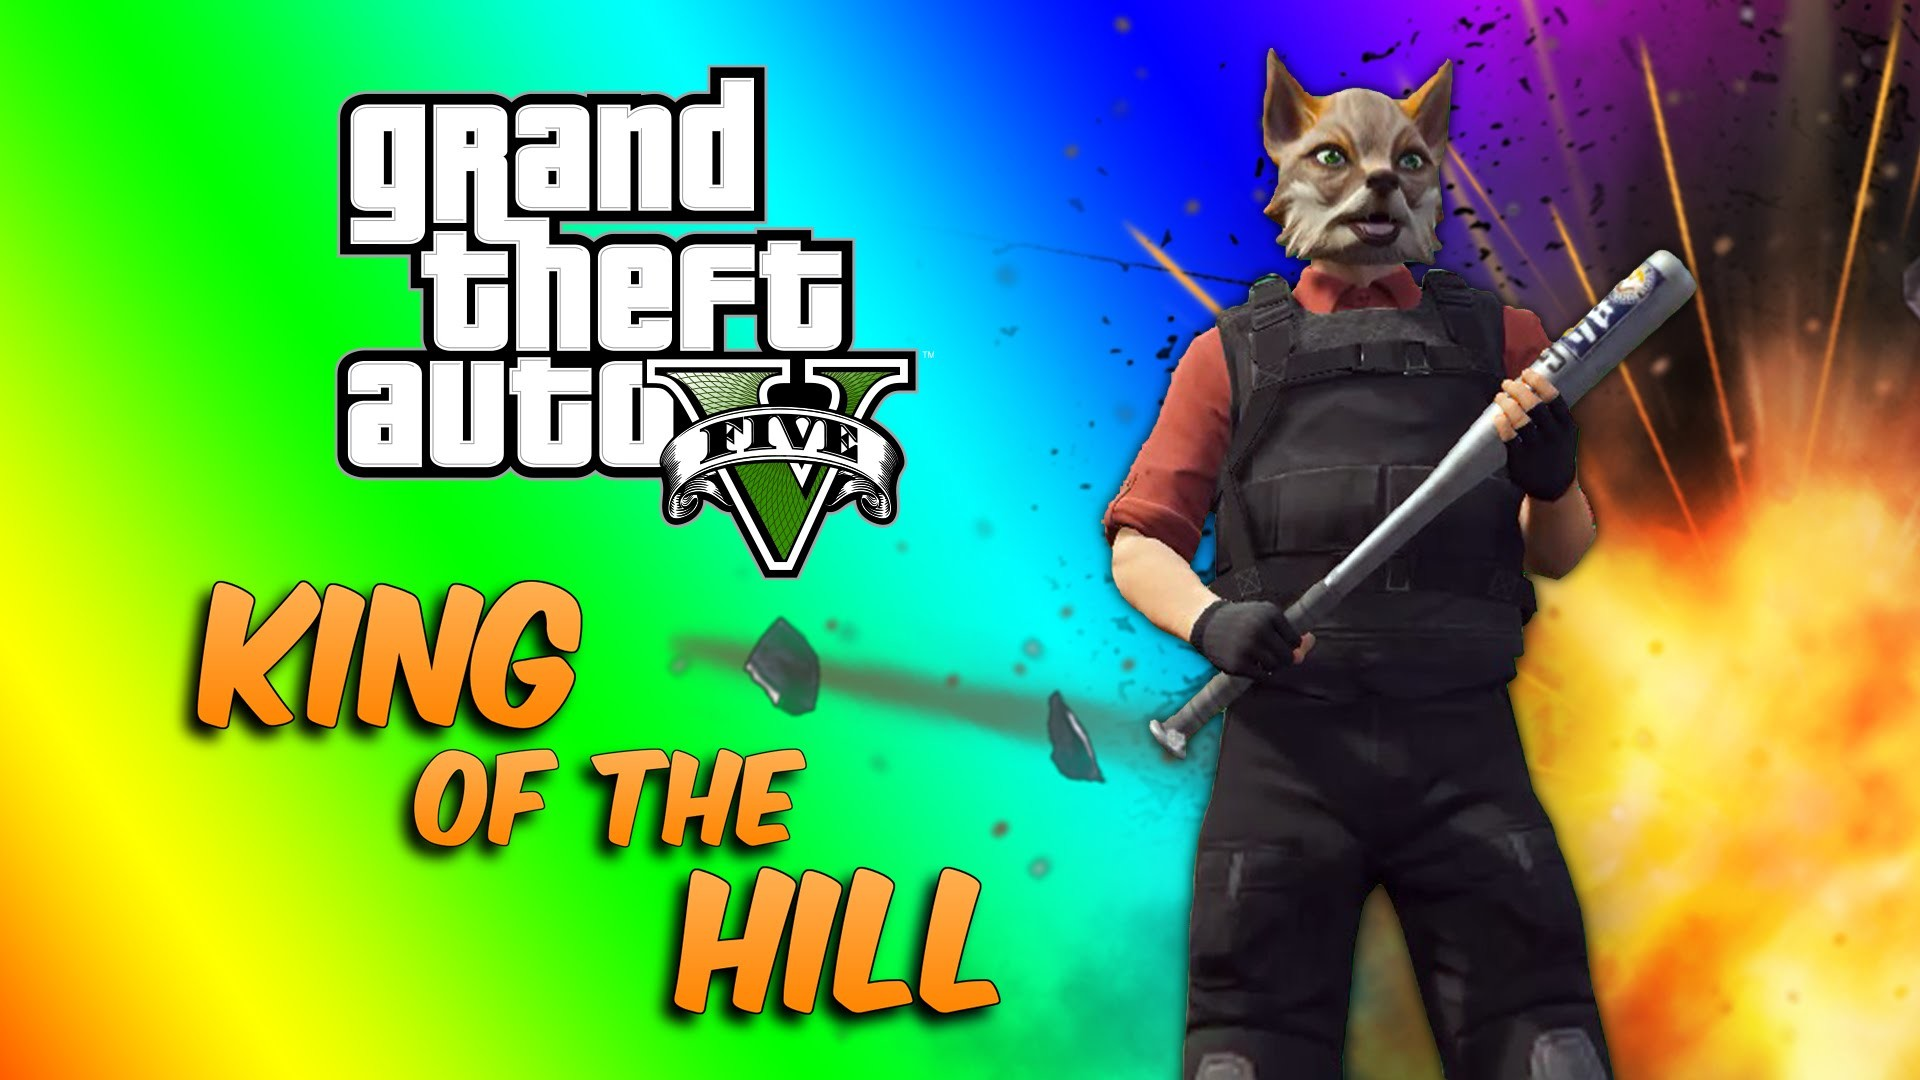 1920x1080 GTA 5 NEW DLC Update 'Freemode Events' Gameplay! - King of the Hill Game  Mode is FUN! (GTAV)